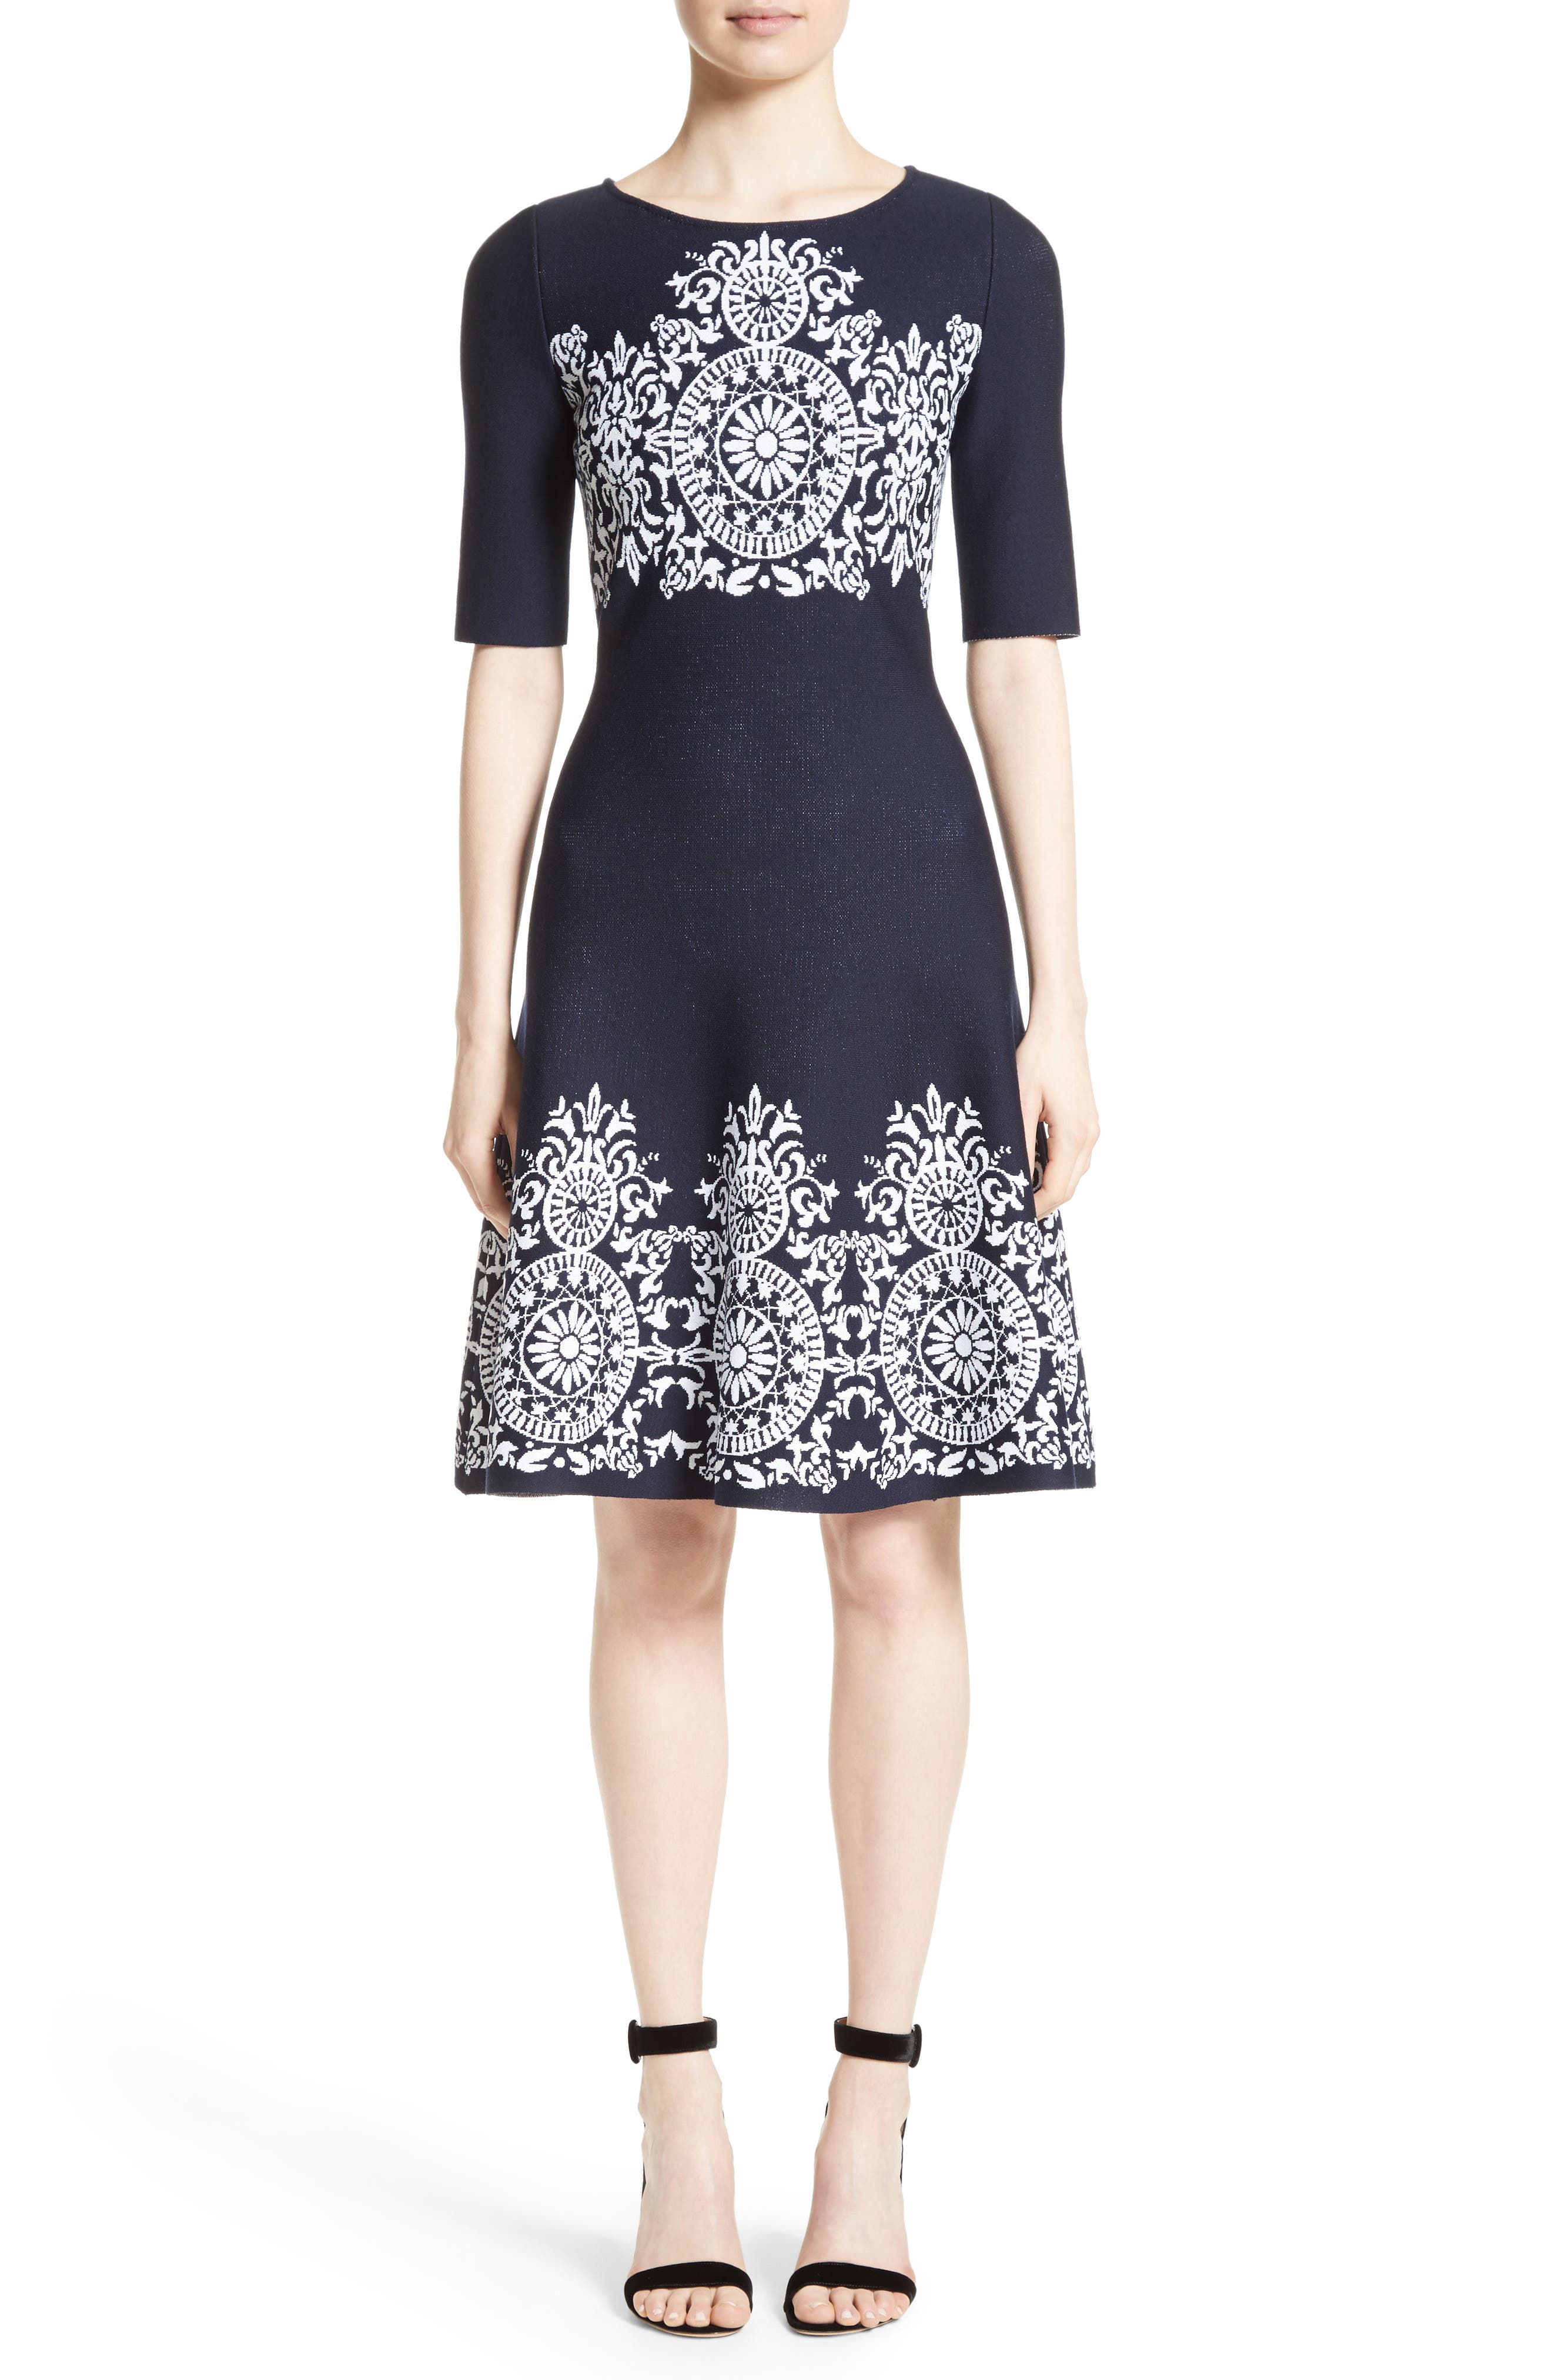 Alternate Image 1 Selected - St. John Collection Nellore Jacquard Knit Fit & Flare Dress